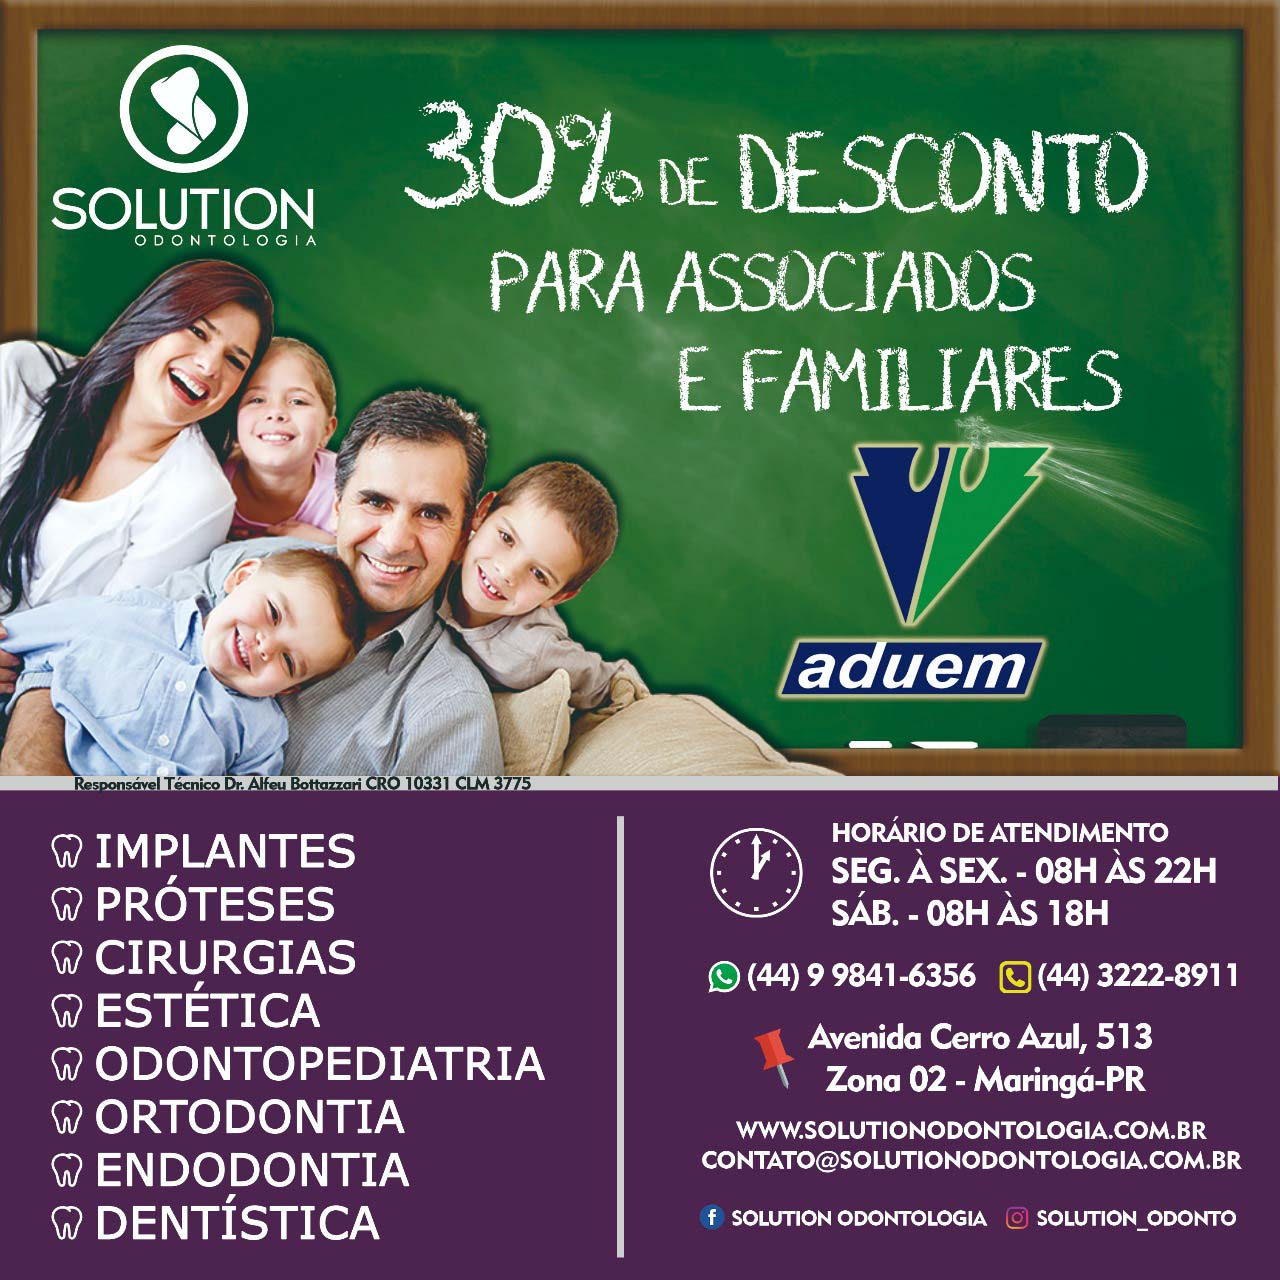 Solution Odontologia